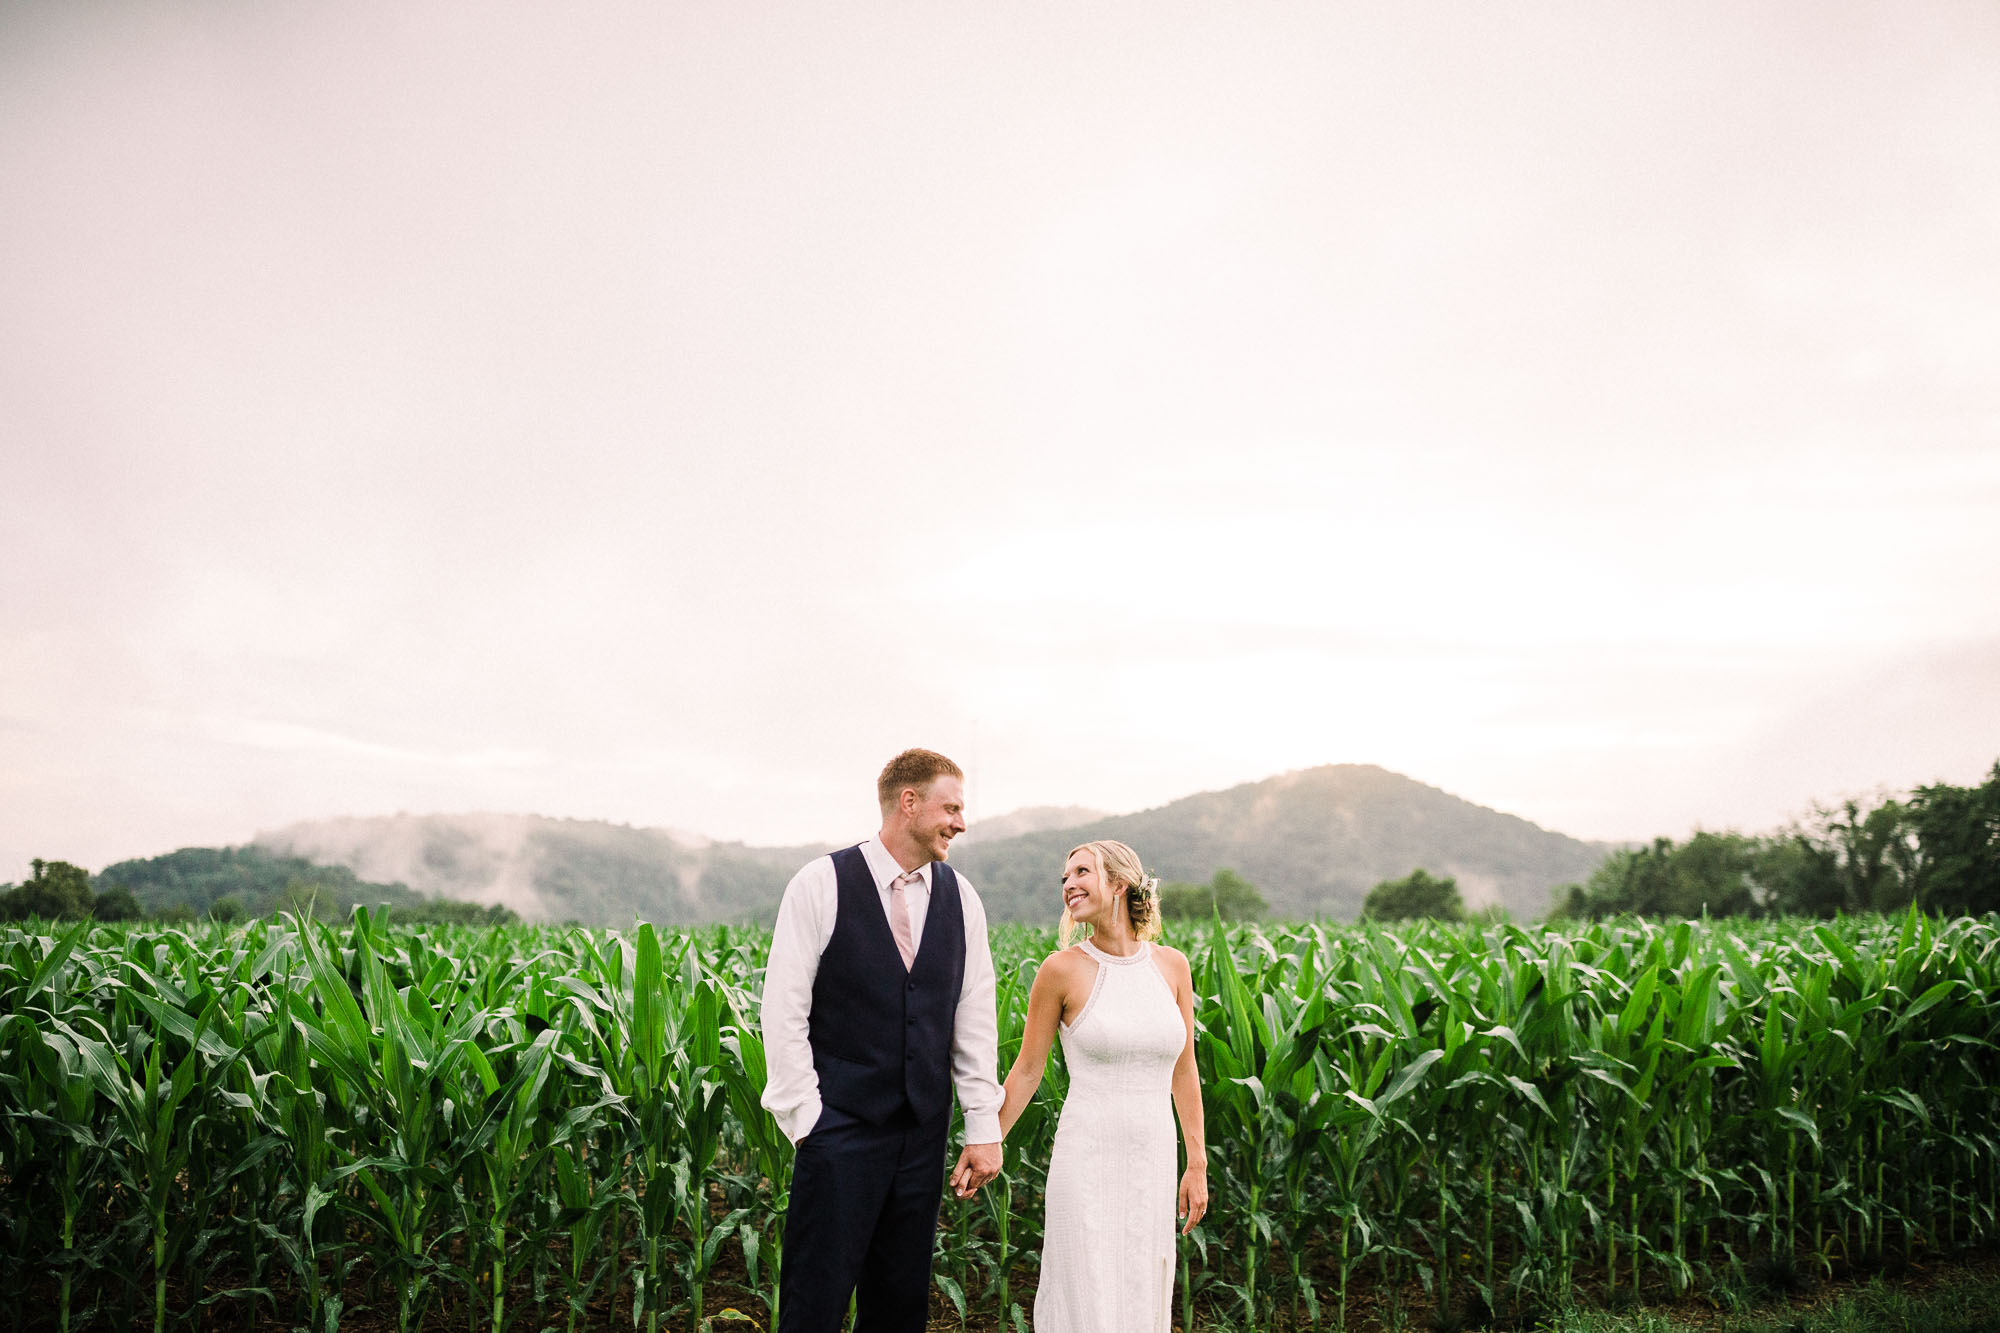 Muncy-backyard-farm-wedding-5466.jpg